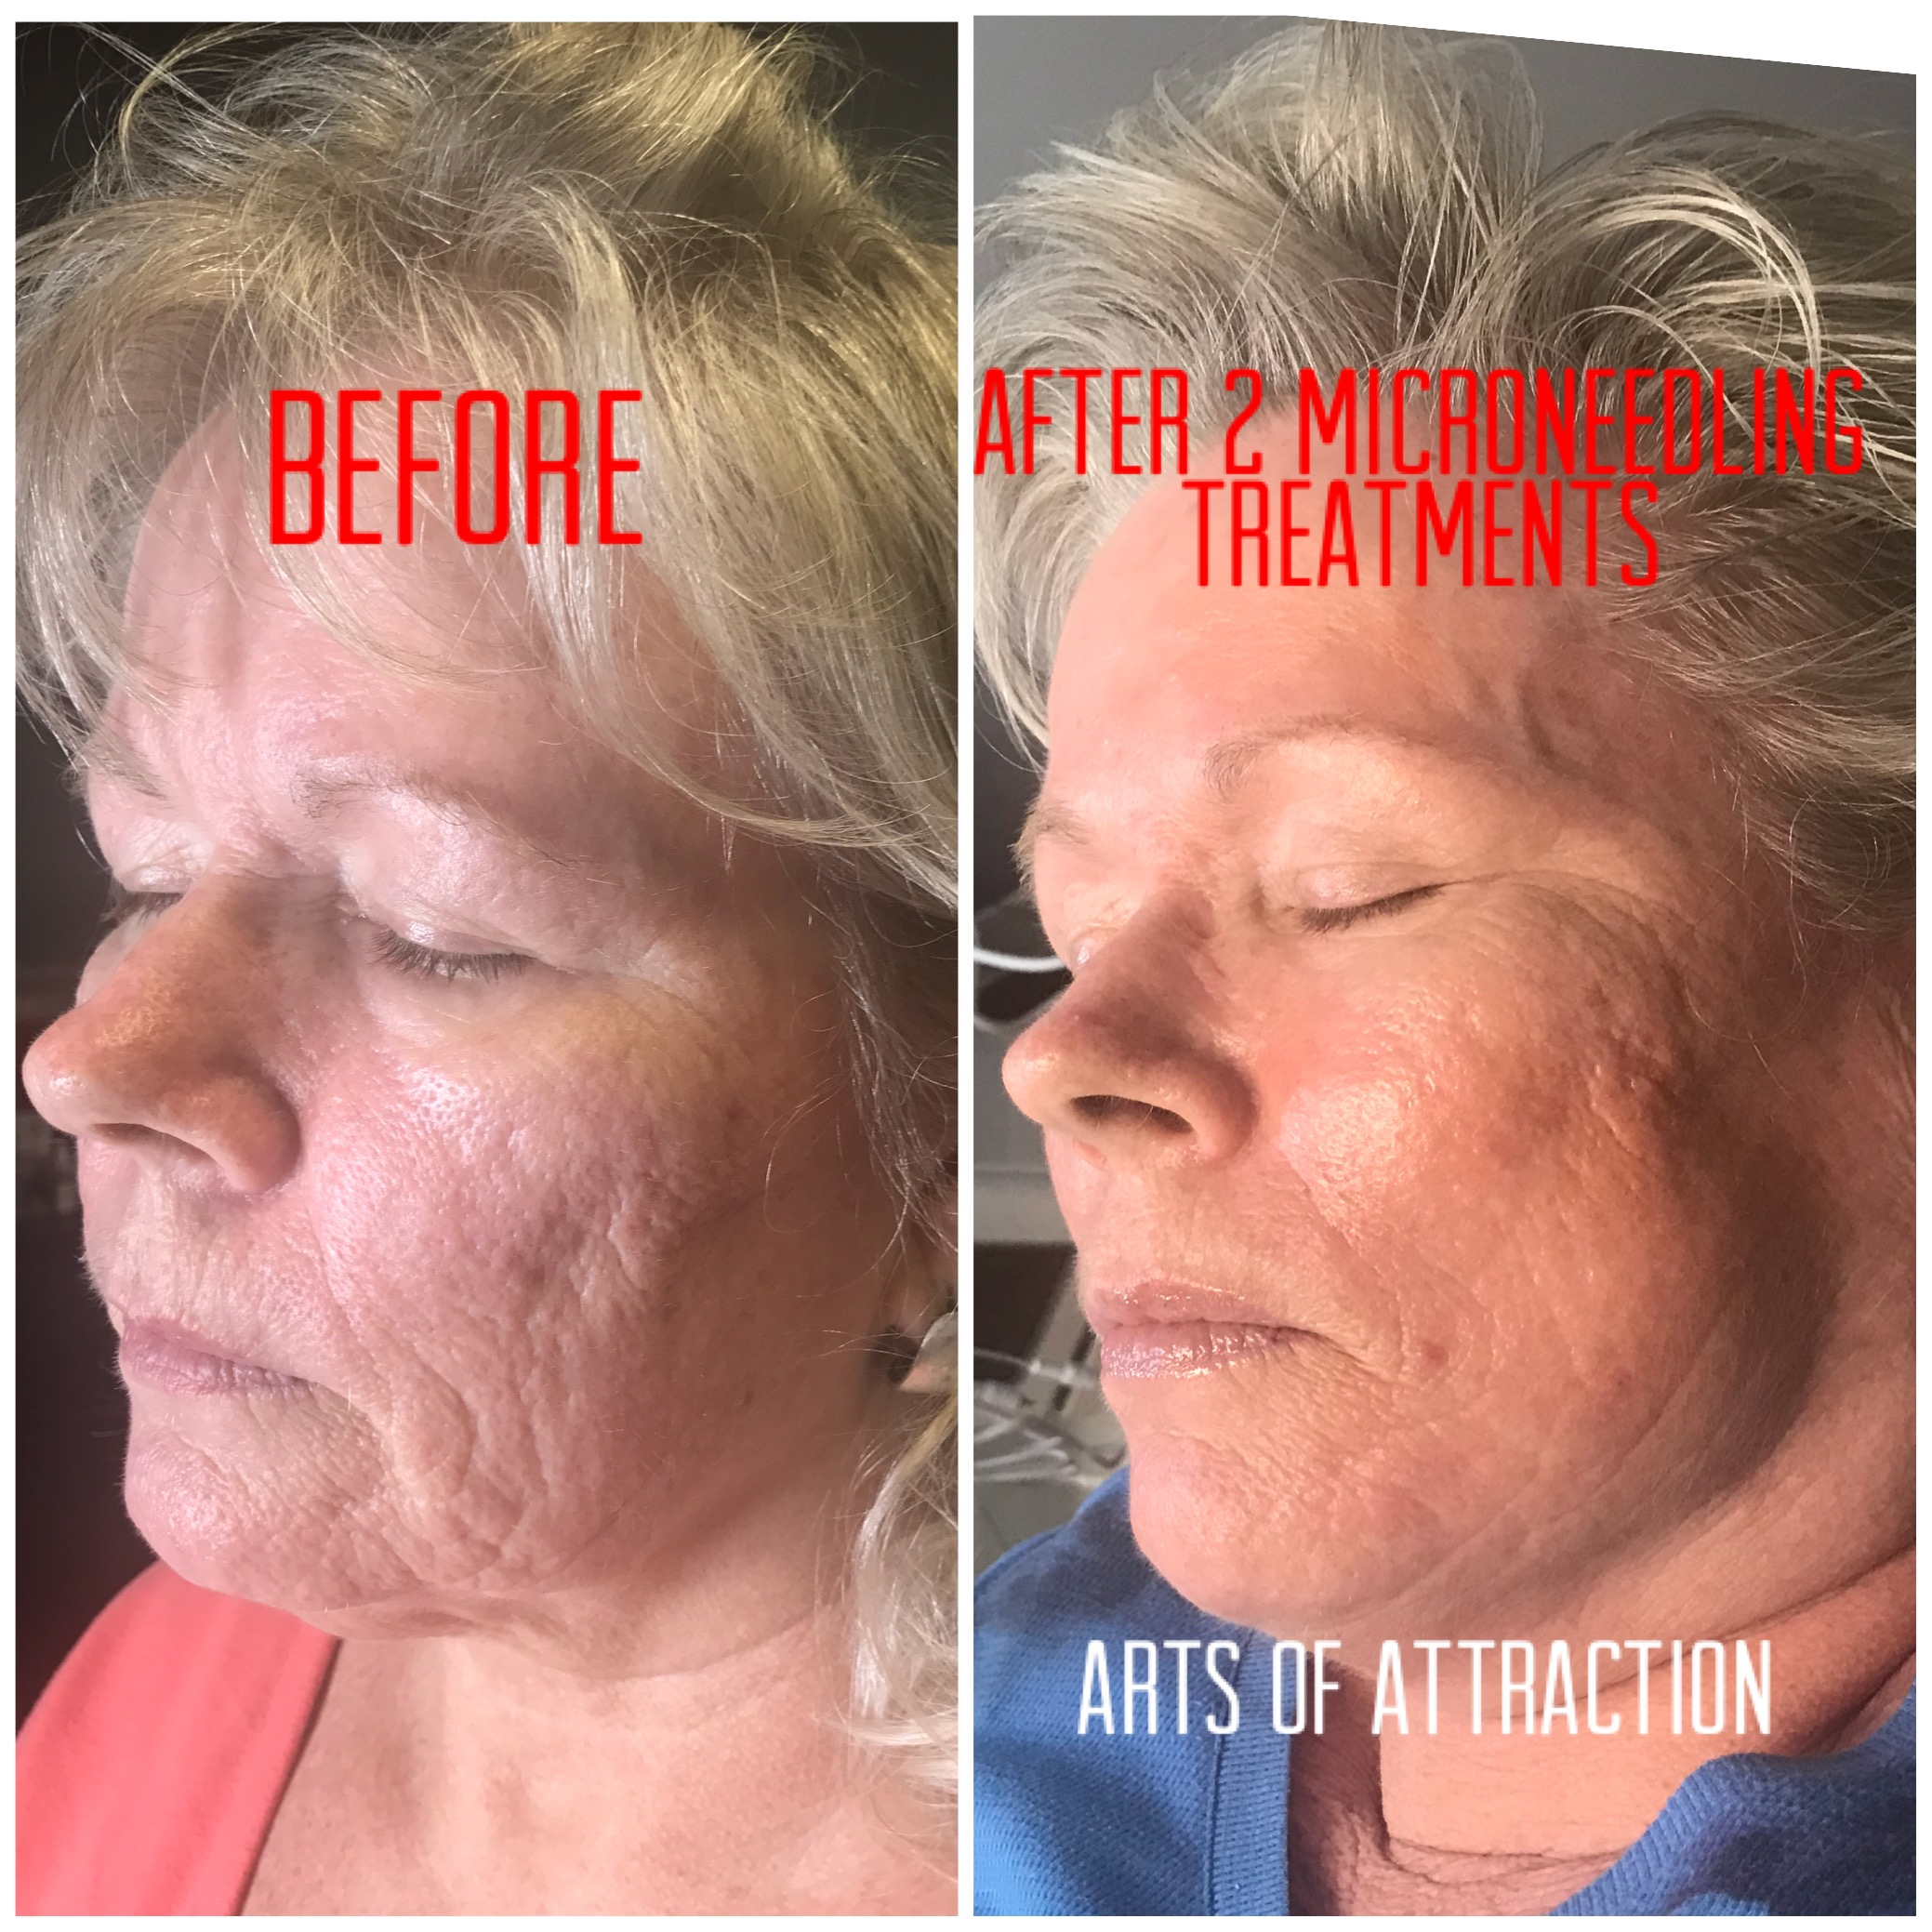 Microneedling - Better than Botox and Fillers